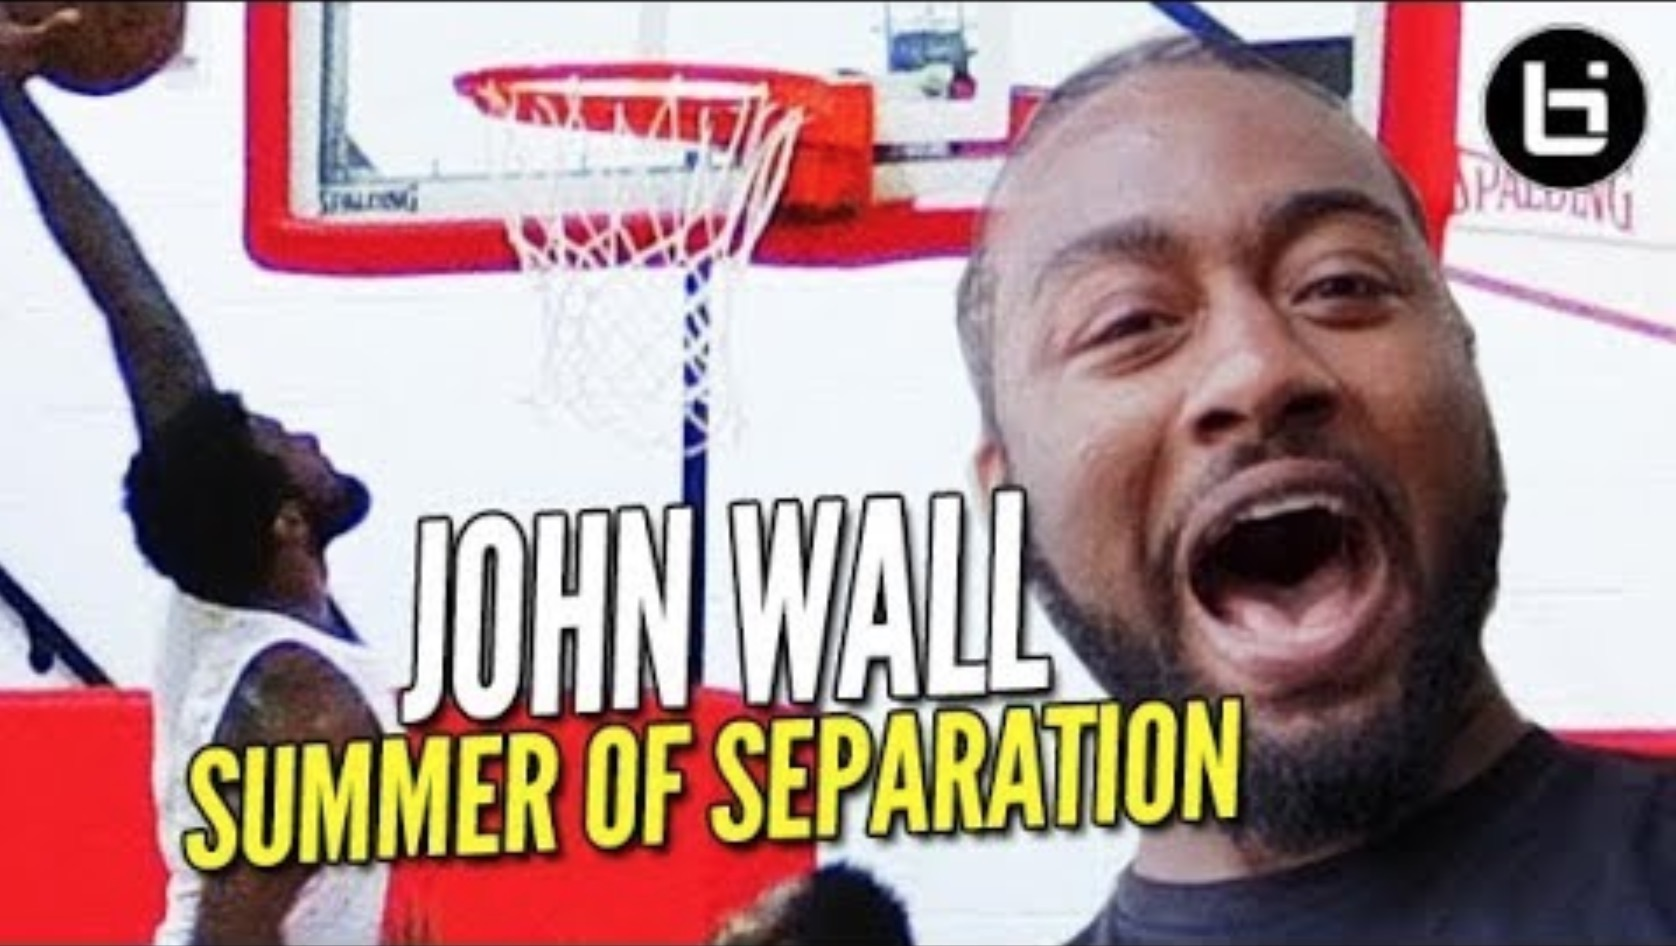 John Wall Summer of Separation Ep 5